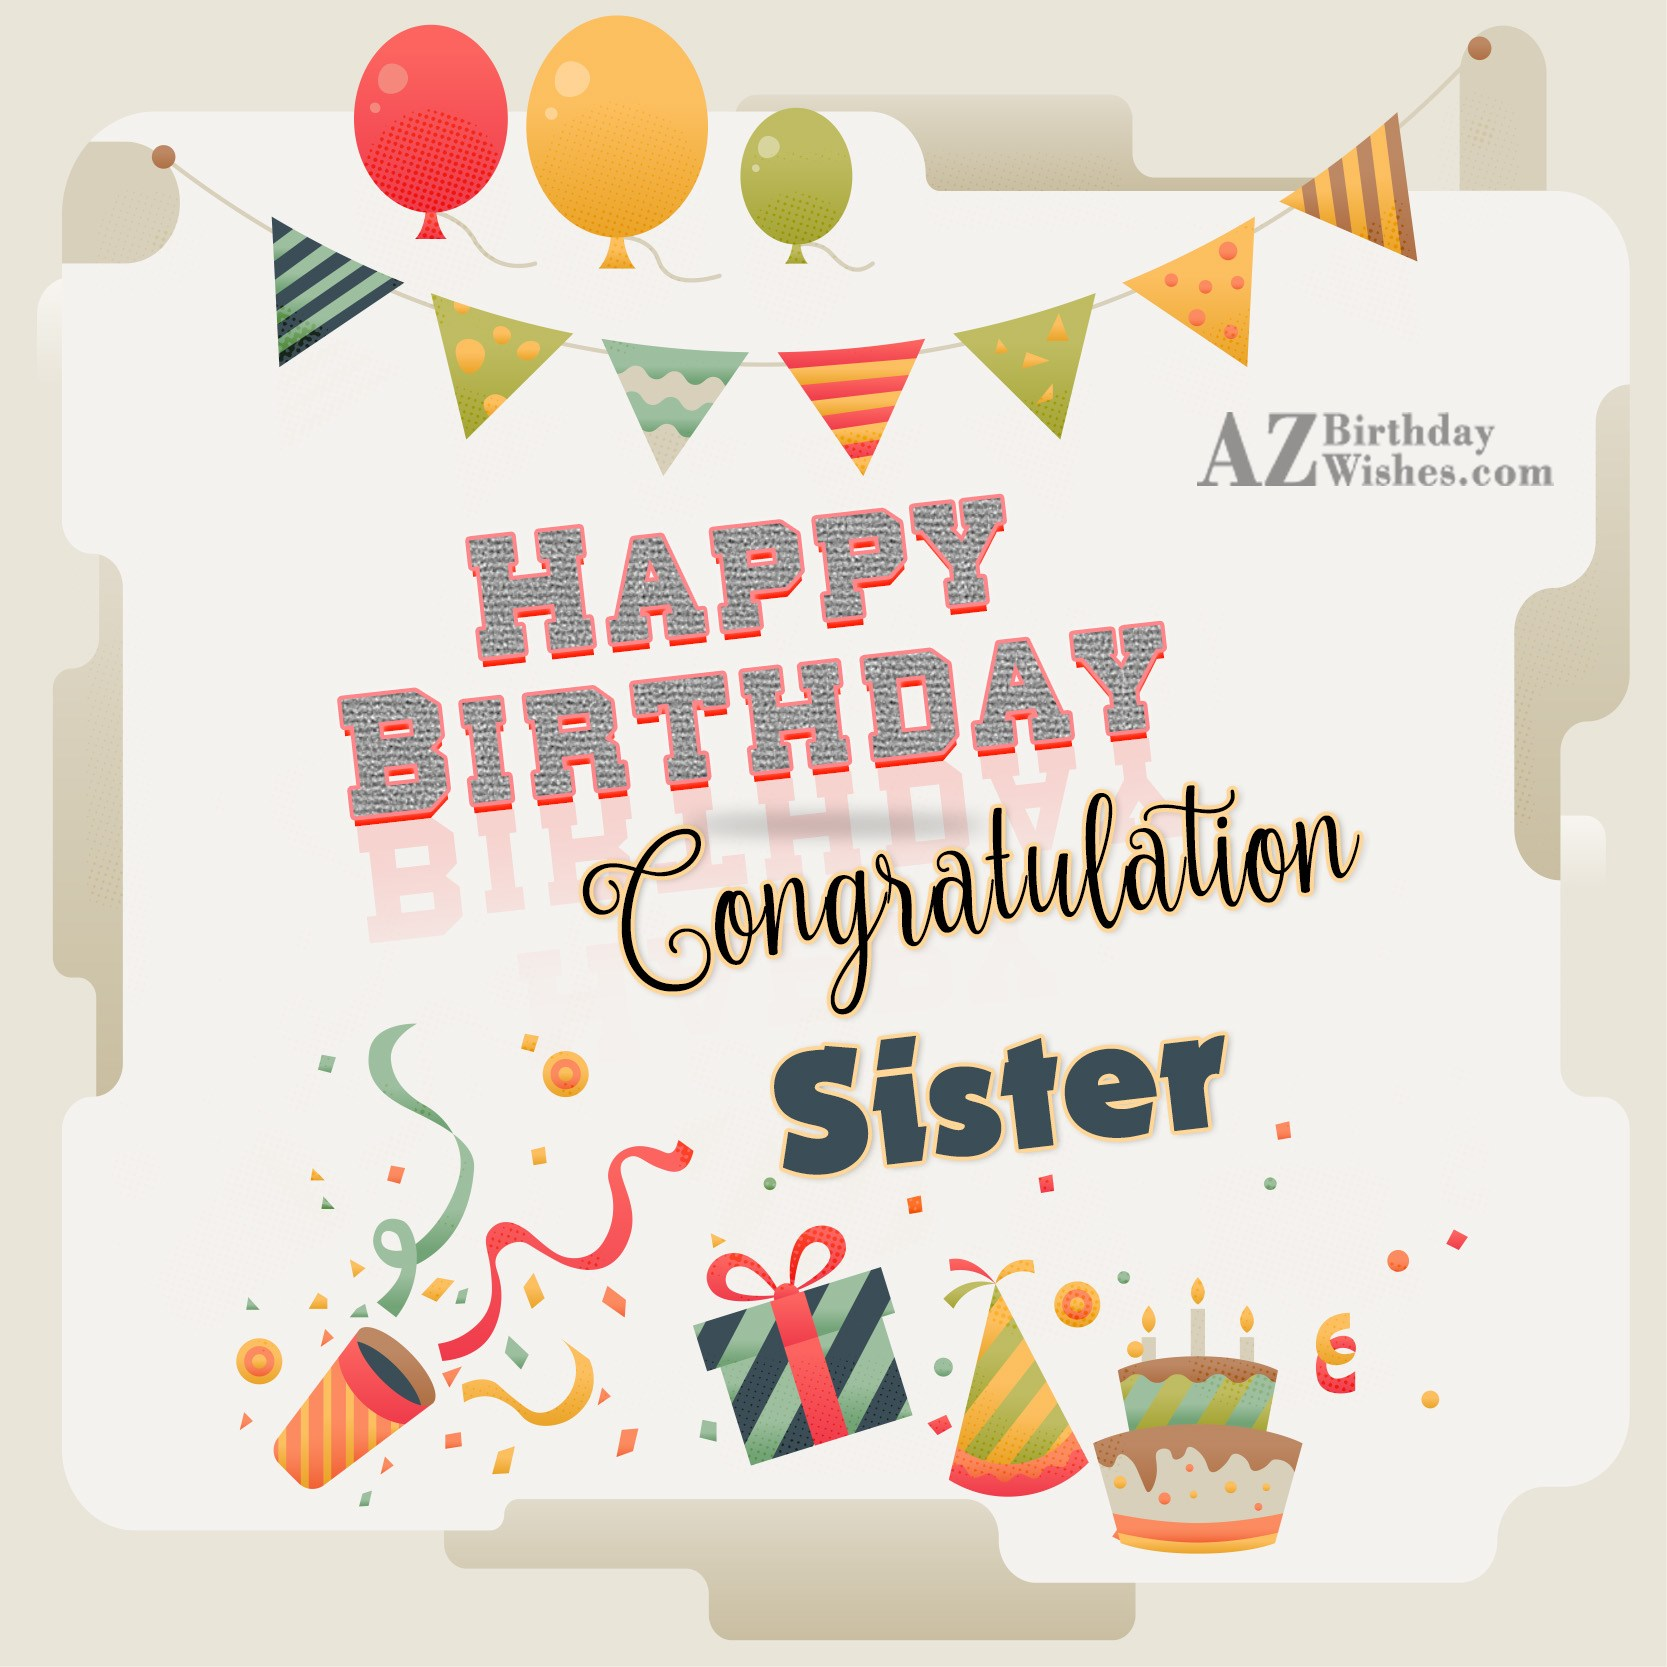 Birthday wishes for sister happy birthday congratulation sisiter kristyandbryce Choice Image